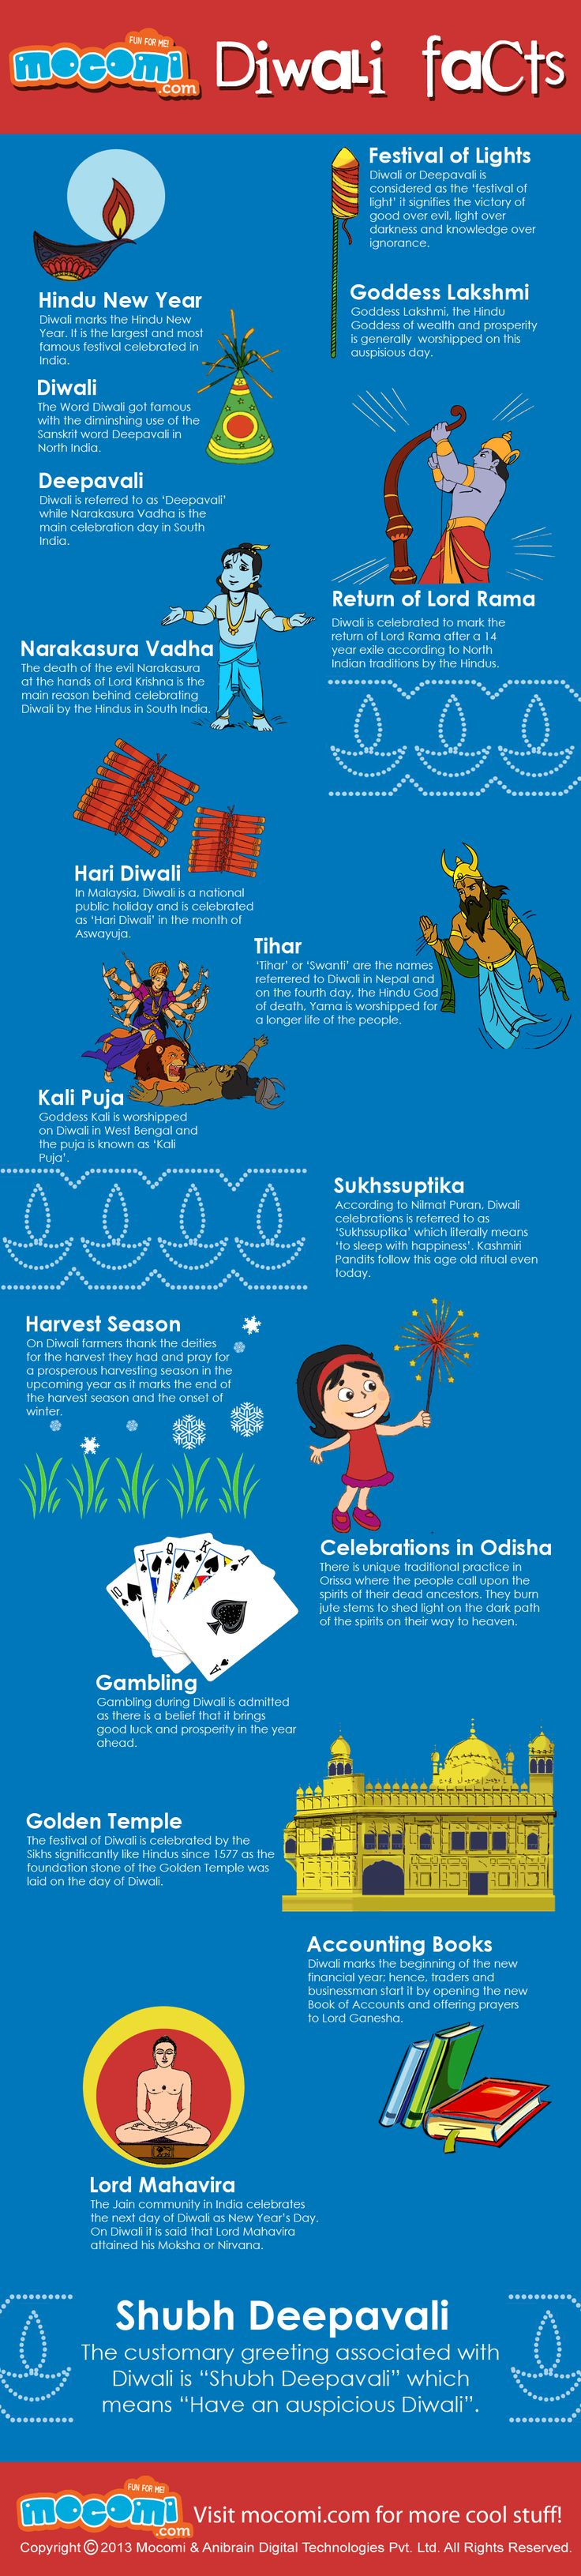 Some amazing facts about the Indian festival - Diwali. Now know some interesting facts about Diwali in this festive season. This INFOGRAPHICS is a part of Issue 4 of our free online kids magazine, Mocomag. Subscribe today for free! http://mocomi.com/magazine/